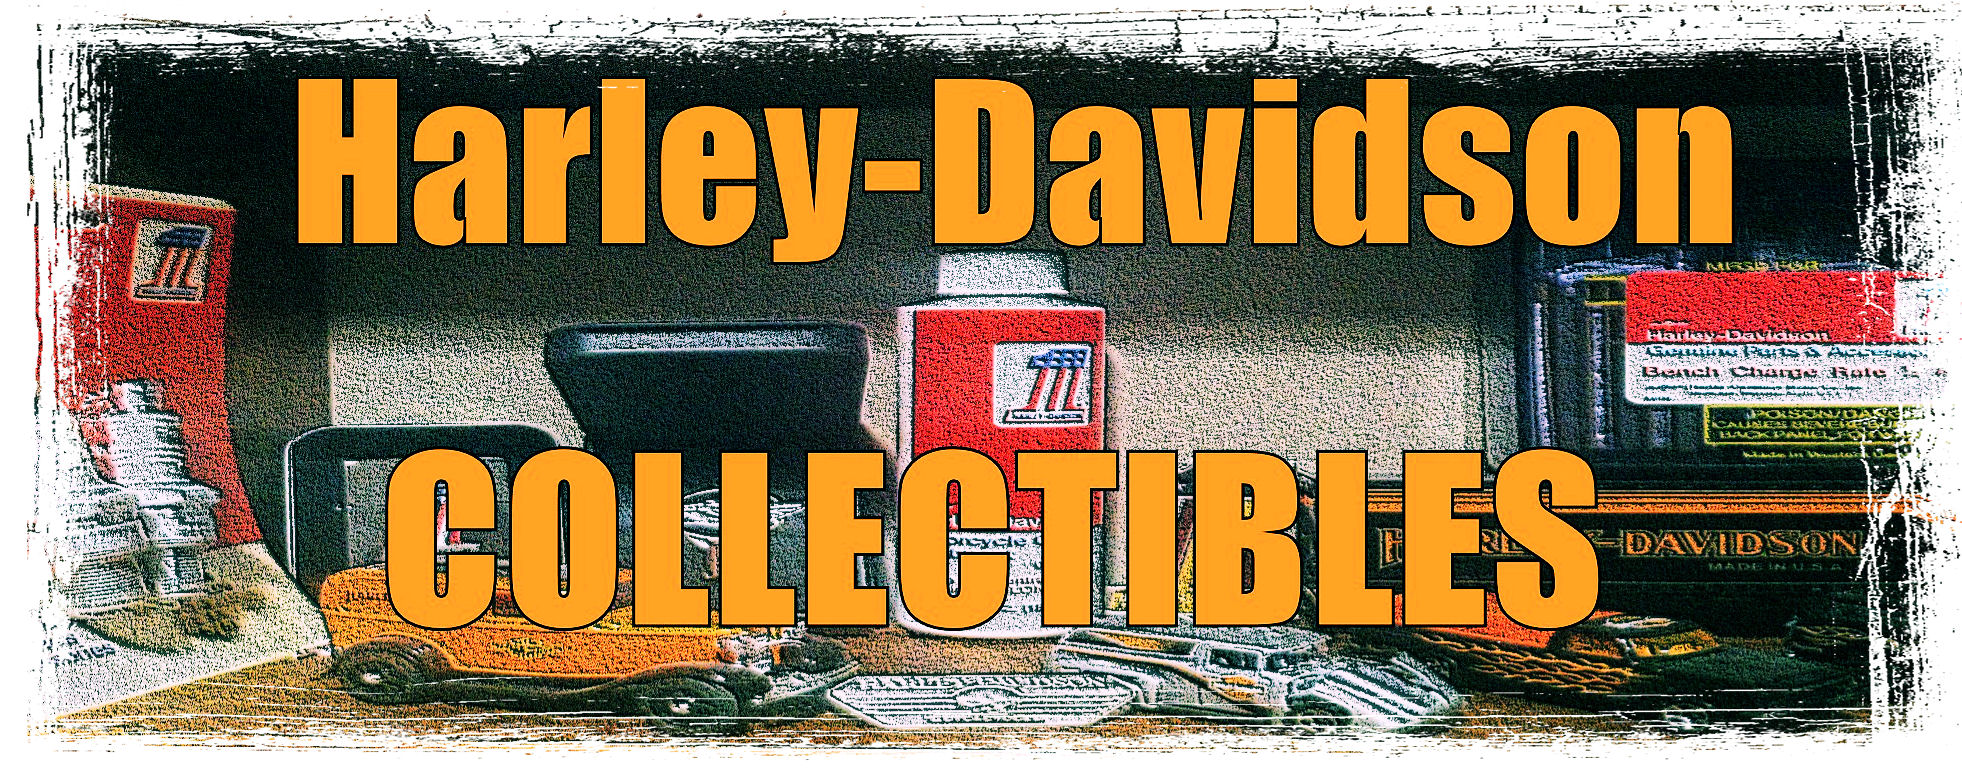 harley-collect-banner2.jpeg